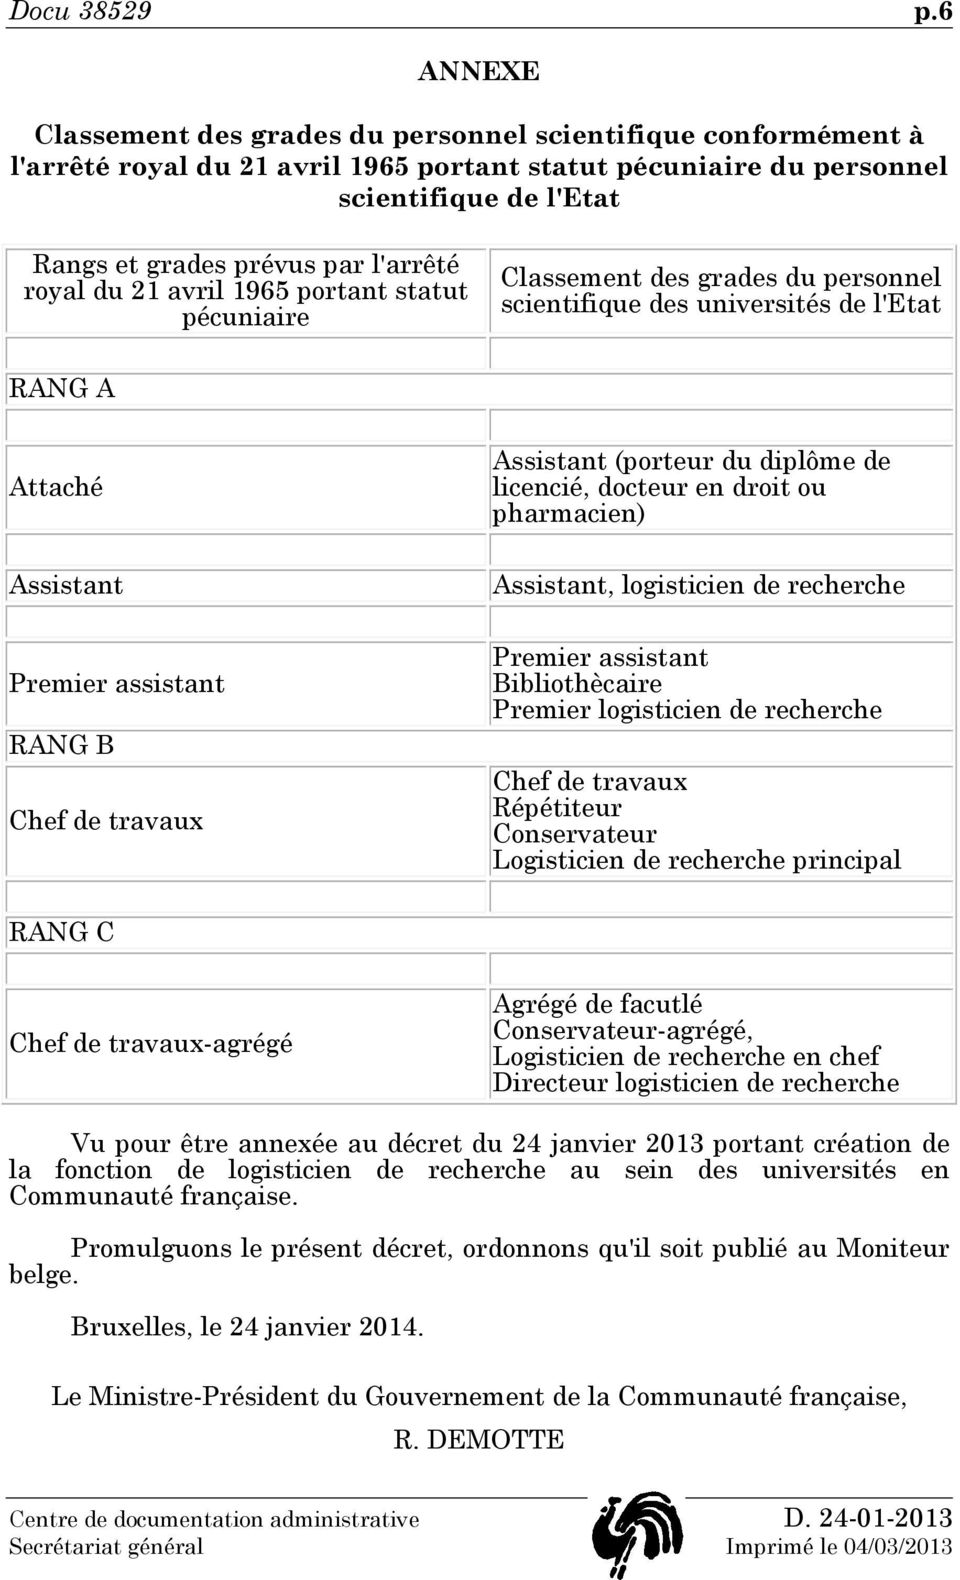 l'arrêté royal du 21 avril 1965 portant statut pécuniaire Classement des grades du personnel scientifique des universités de l'etat RANG A Attaché Assistant Premier assistant RANG B Chef de travaux